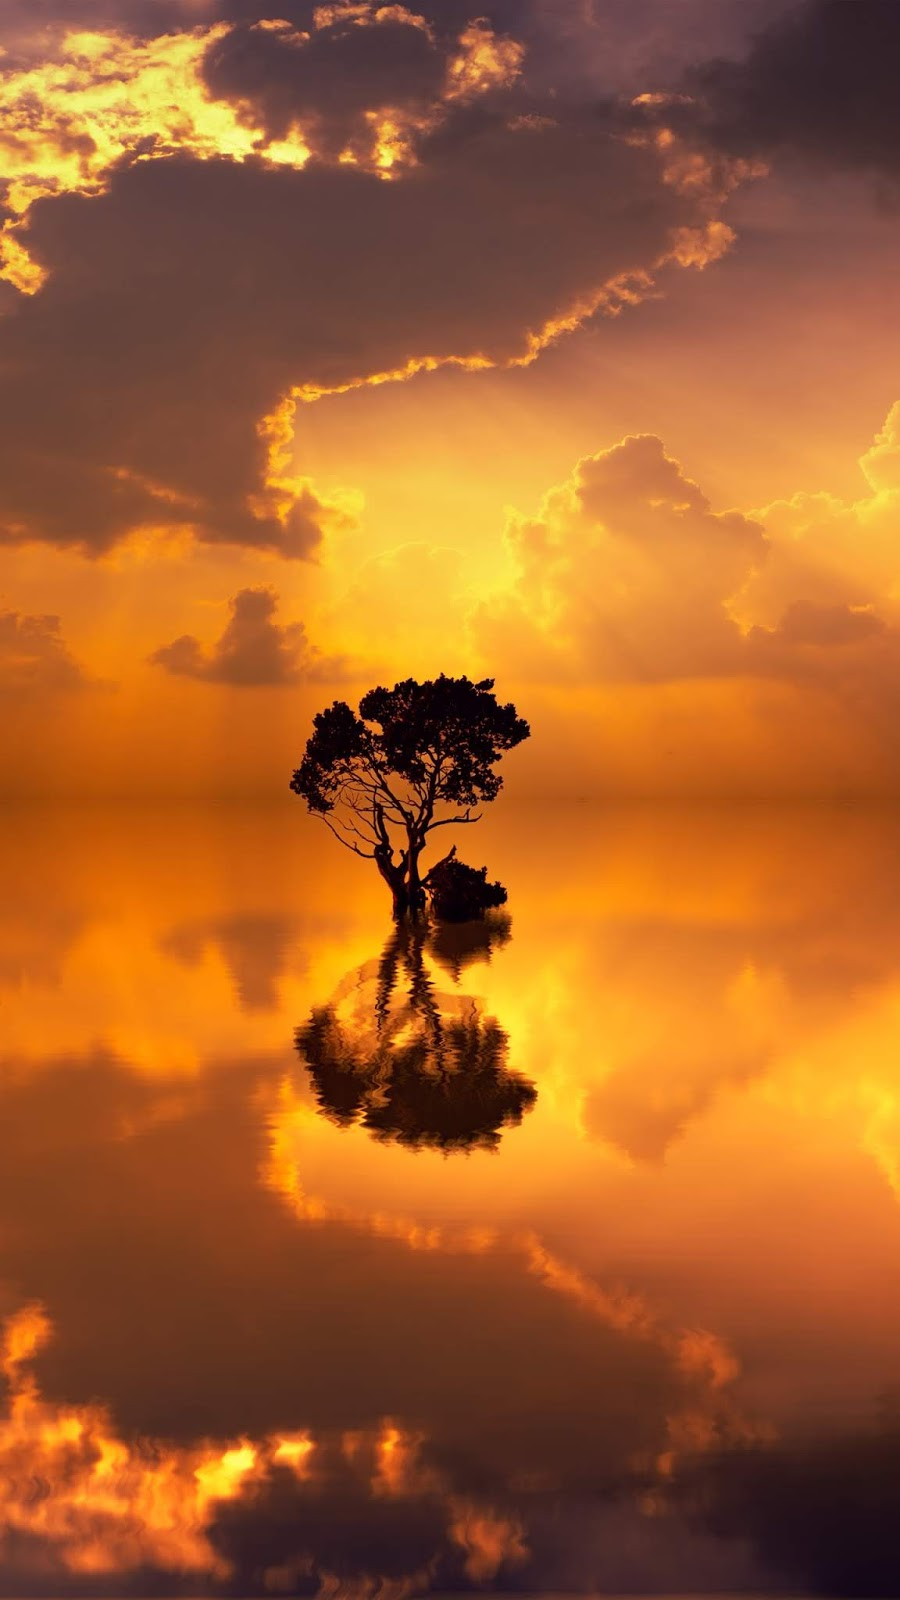 Lonely tree in the sunset